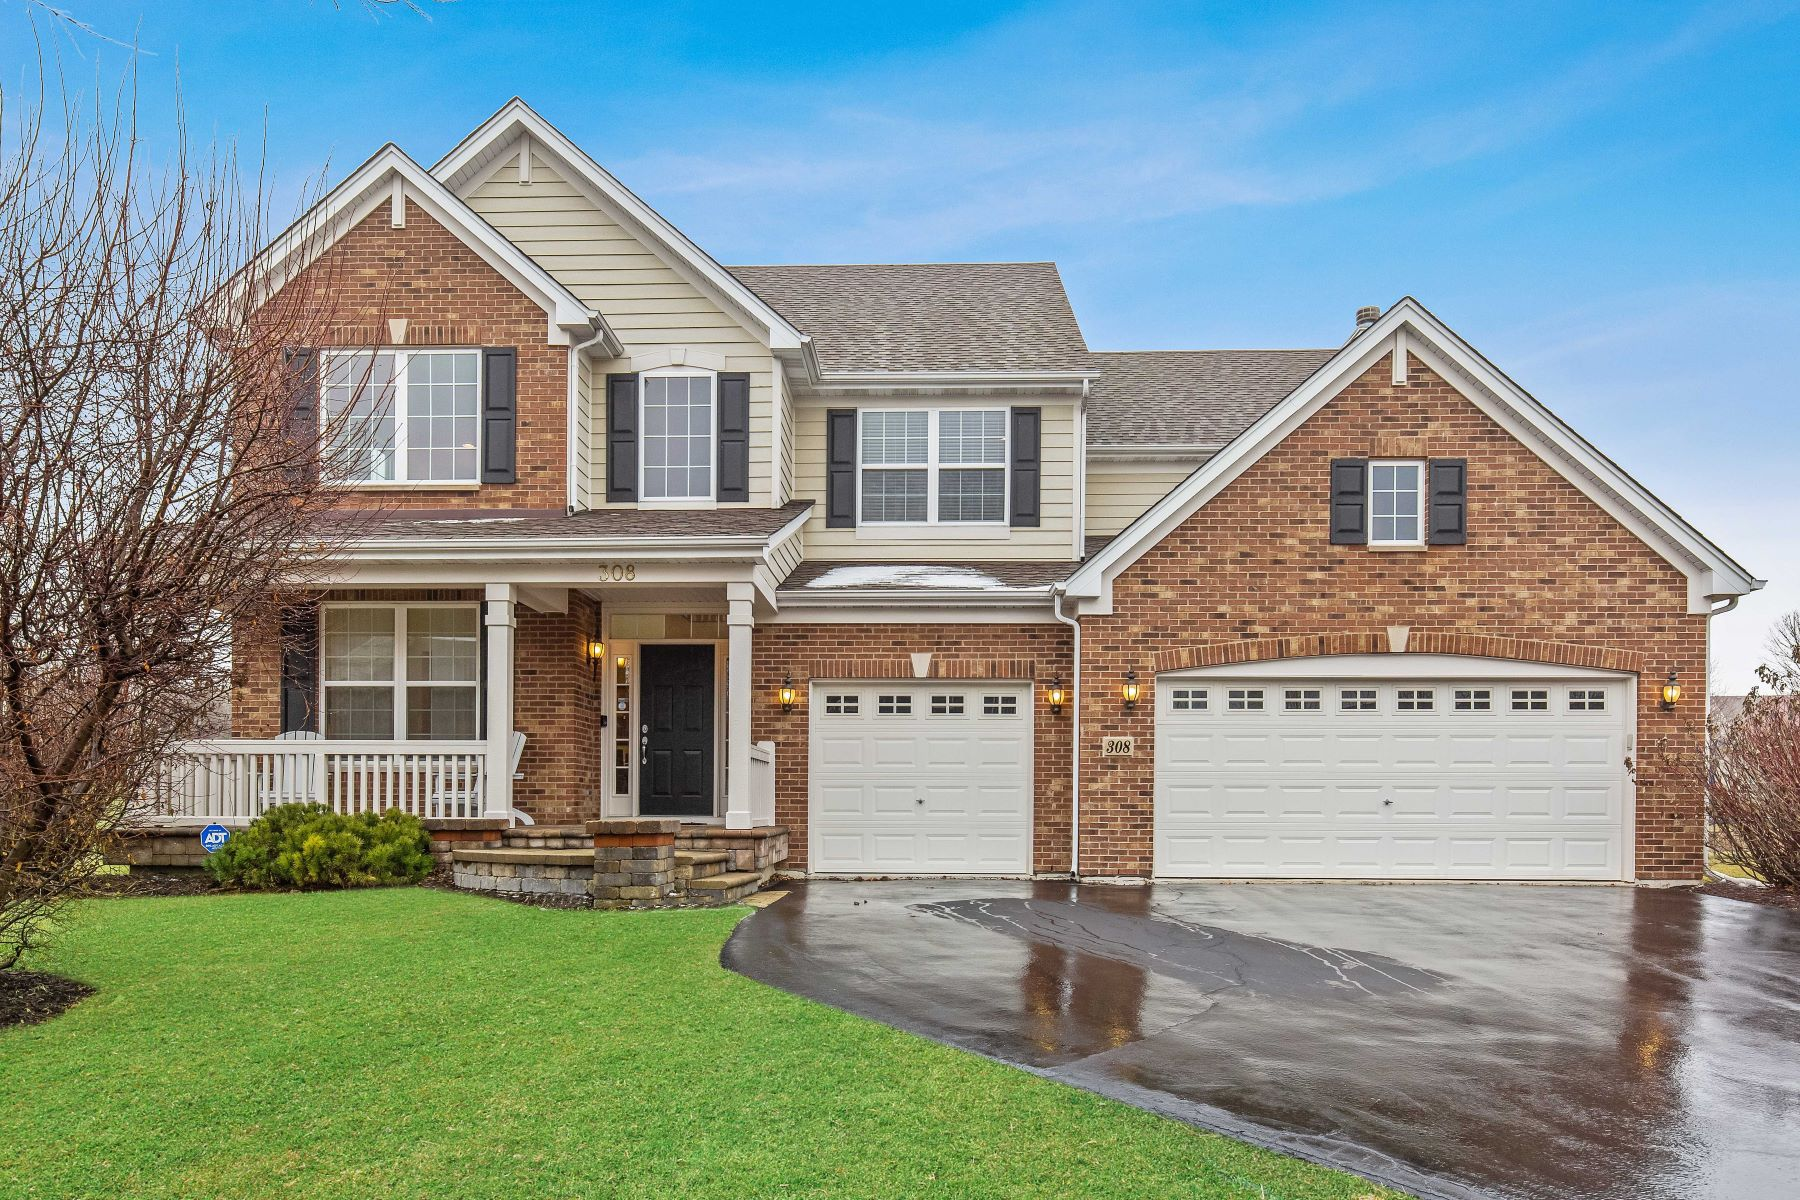 Single Family Homes for Active at Welcome Home! 308 Comstock Drive Elgin, Illinois 60124 United States